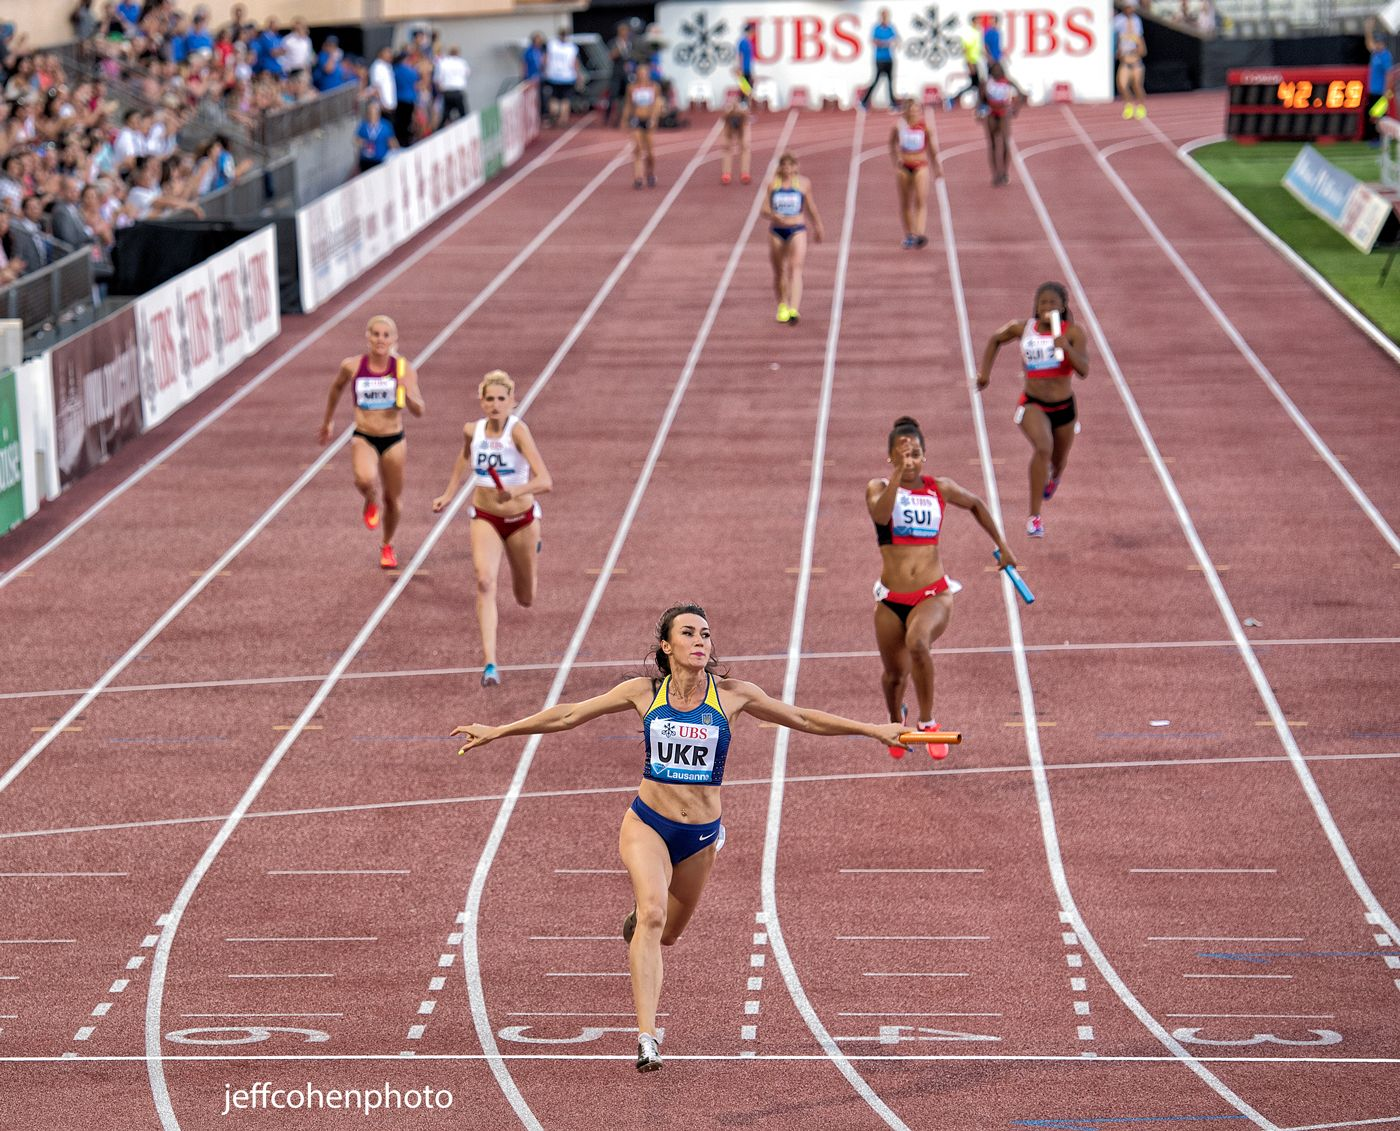 1r2016_athletissima_lausanne_ukraine_4x100w_jeff_cohen_photo_731_web.jpg